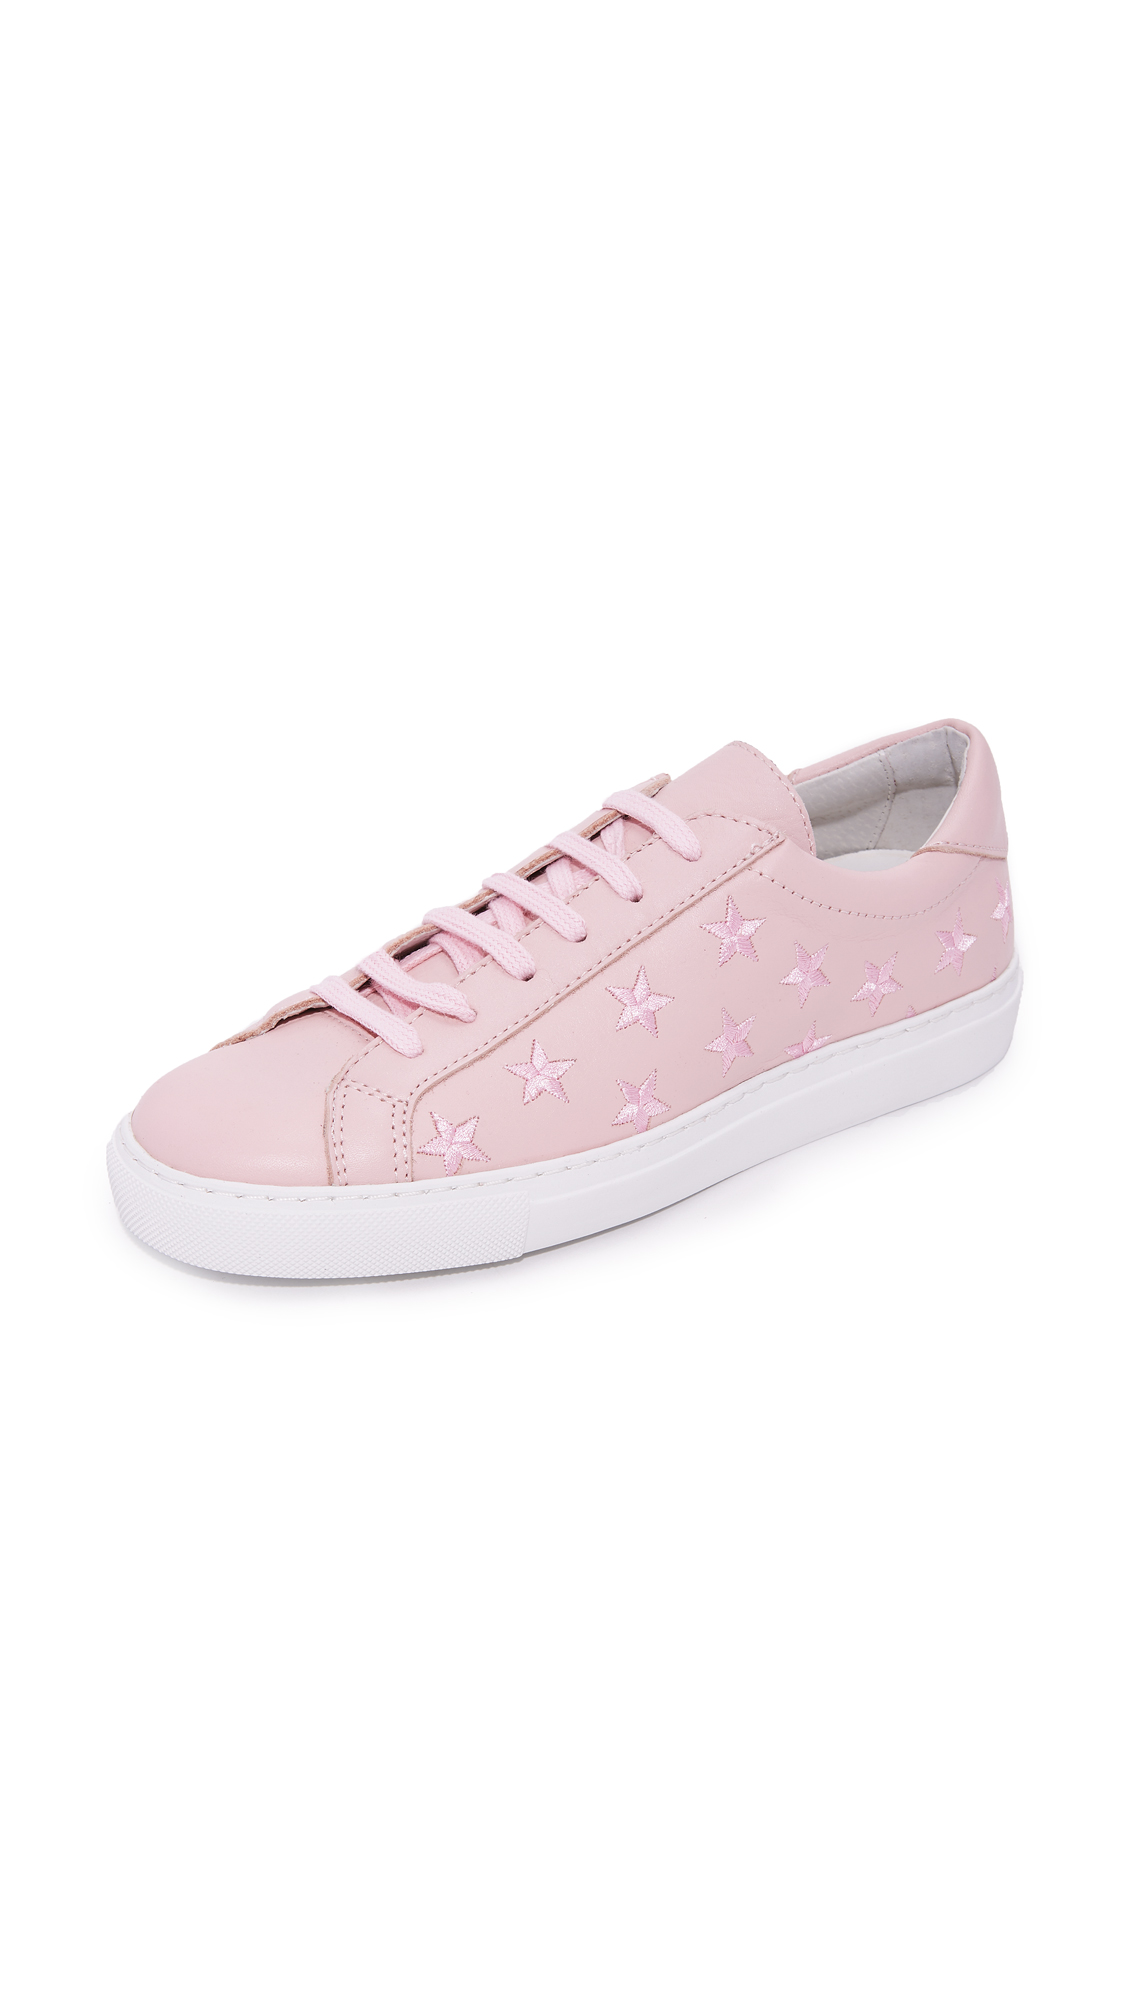 South Parade Stars Leather Lace Up Sneakers - Pink/Pink